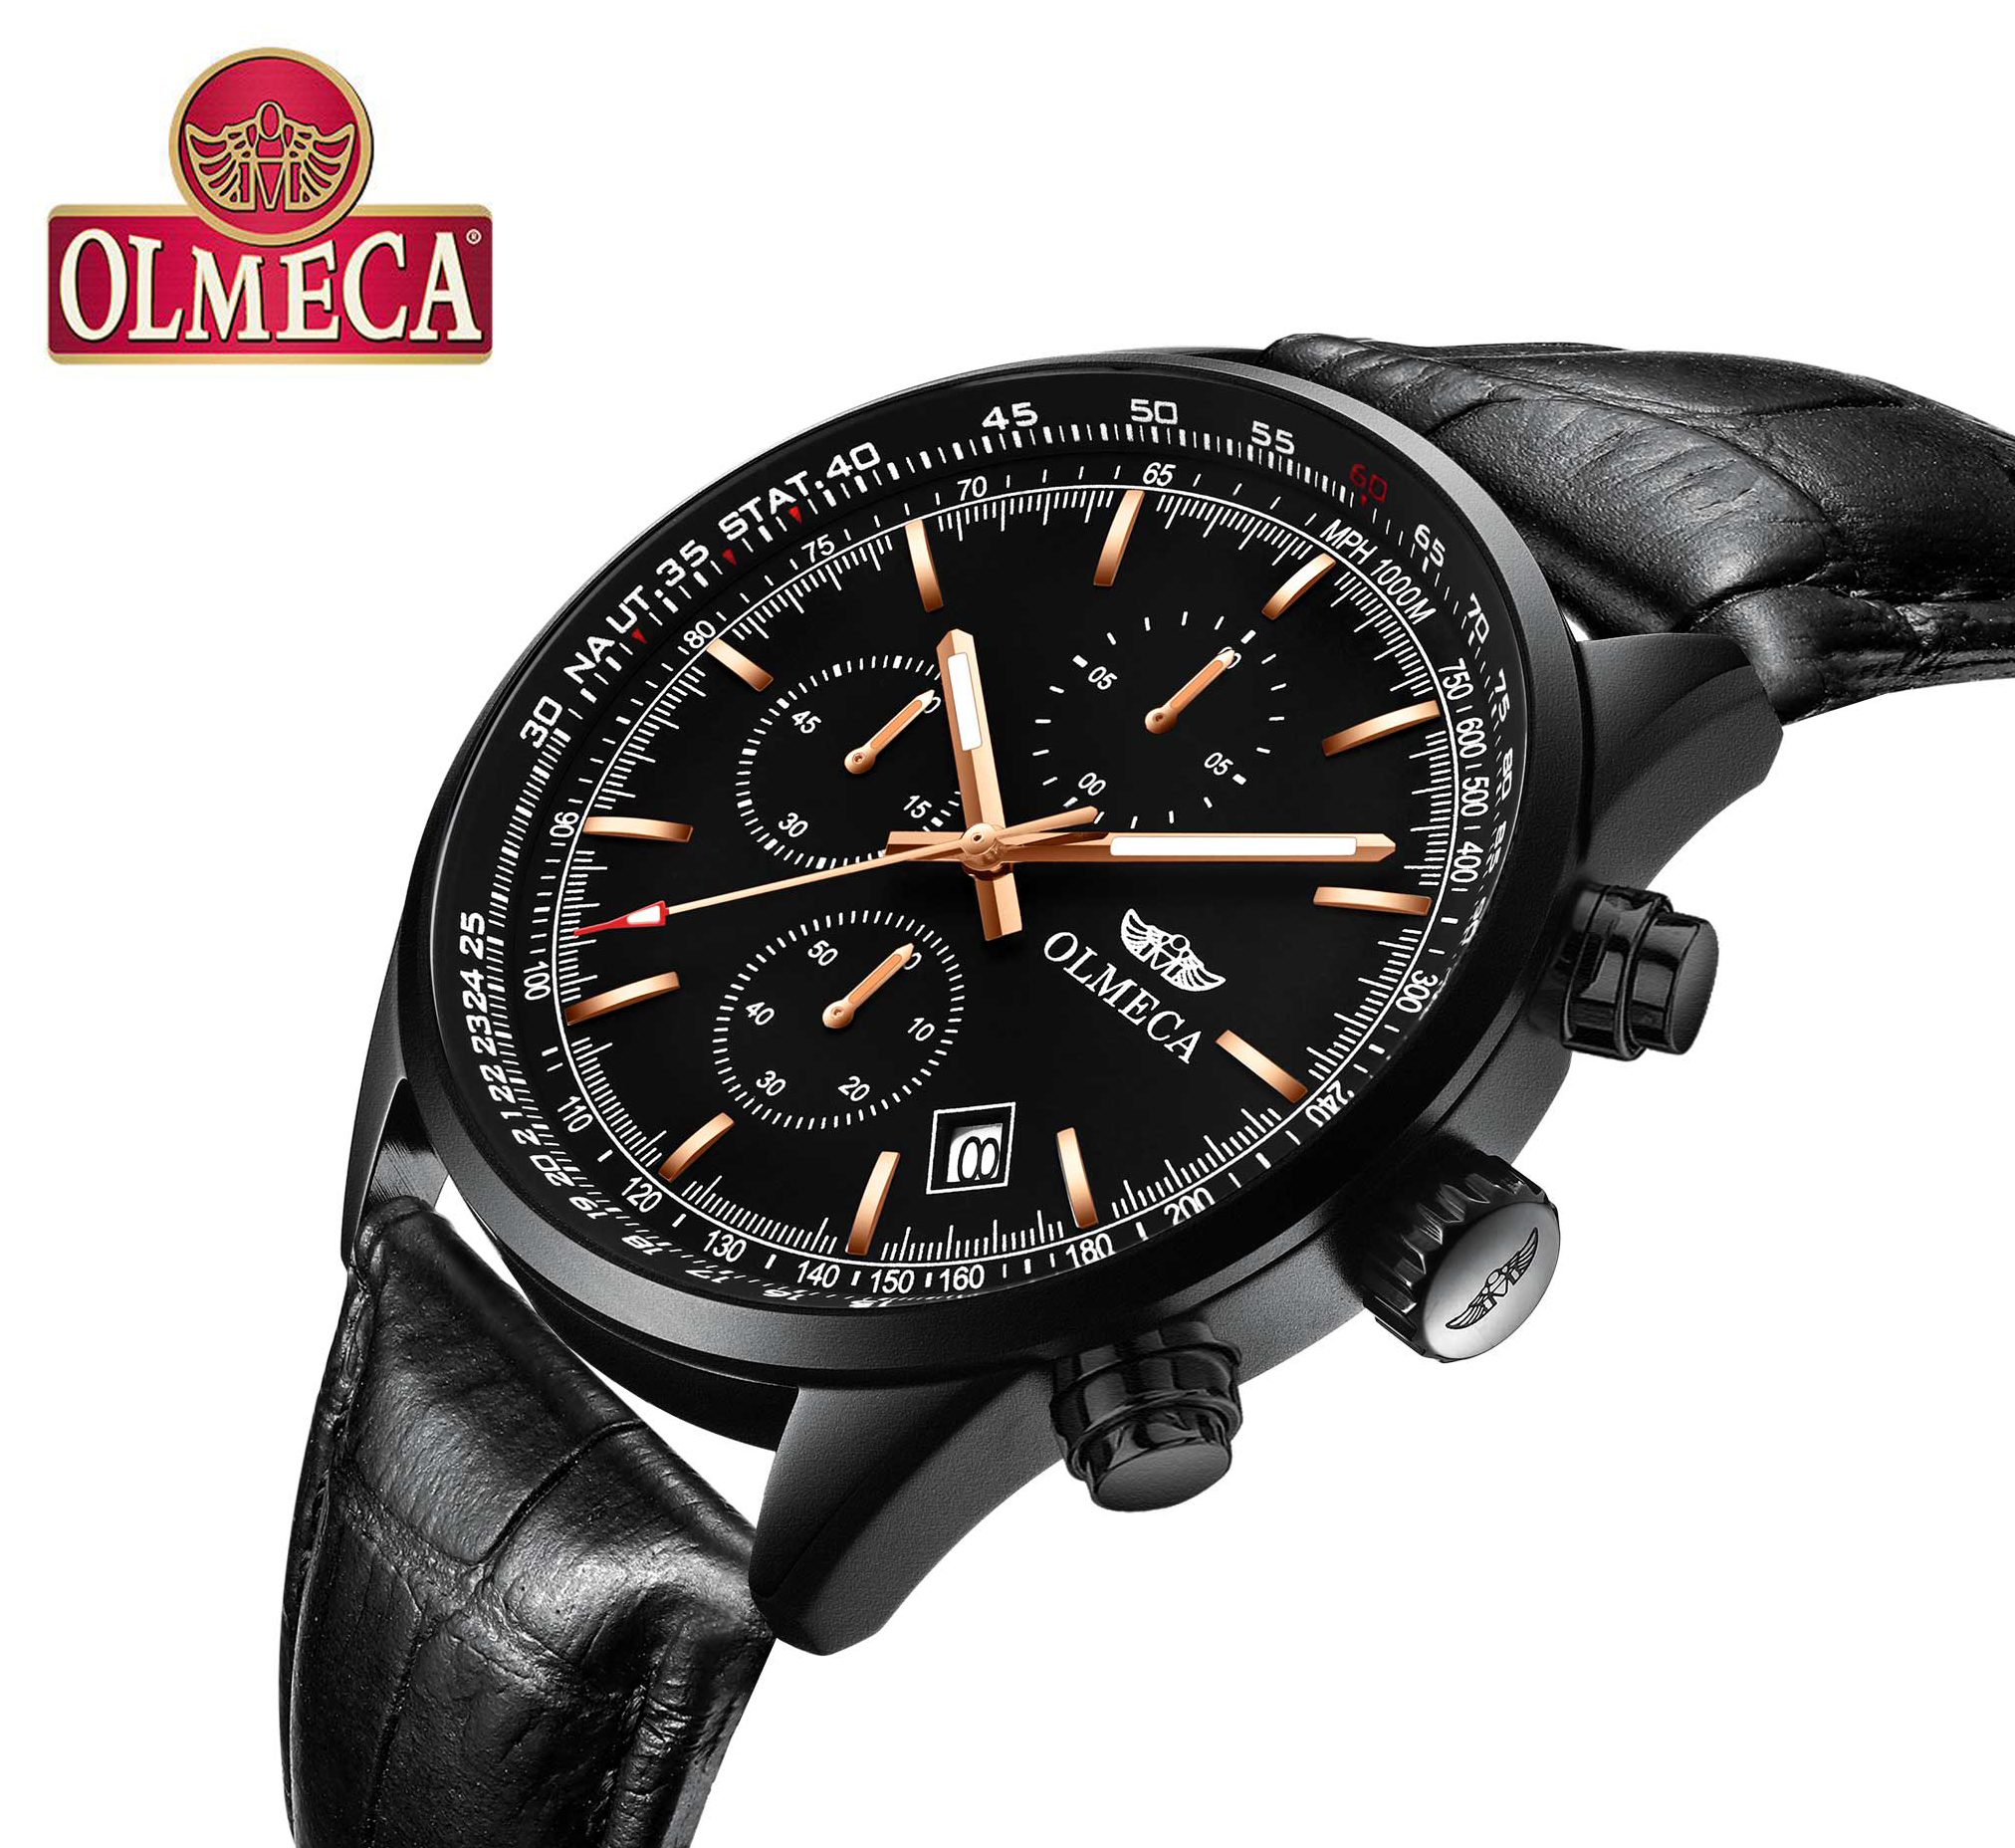 OLMECA Men's Watch Luxury Fashion Casual Dial Stainless Leather Wrist Watches Business Watch luminous function Health Watch